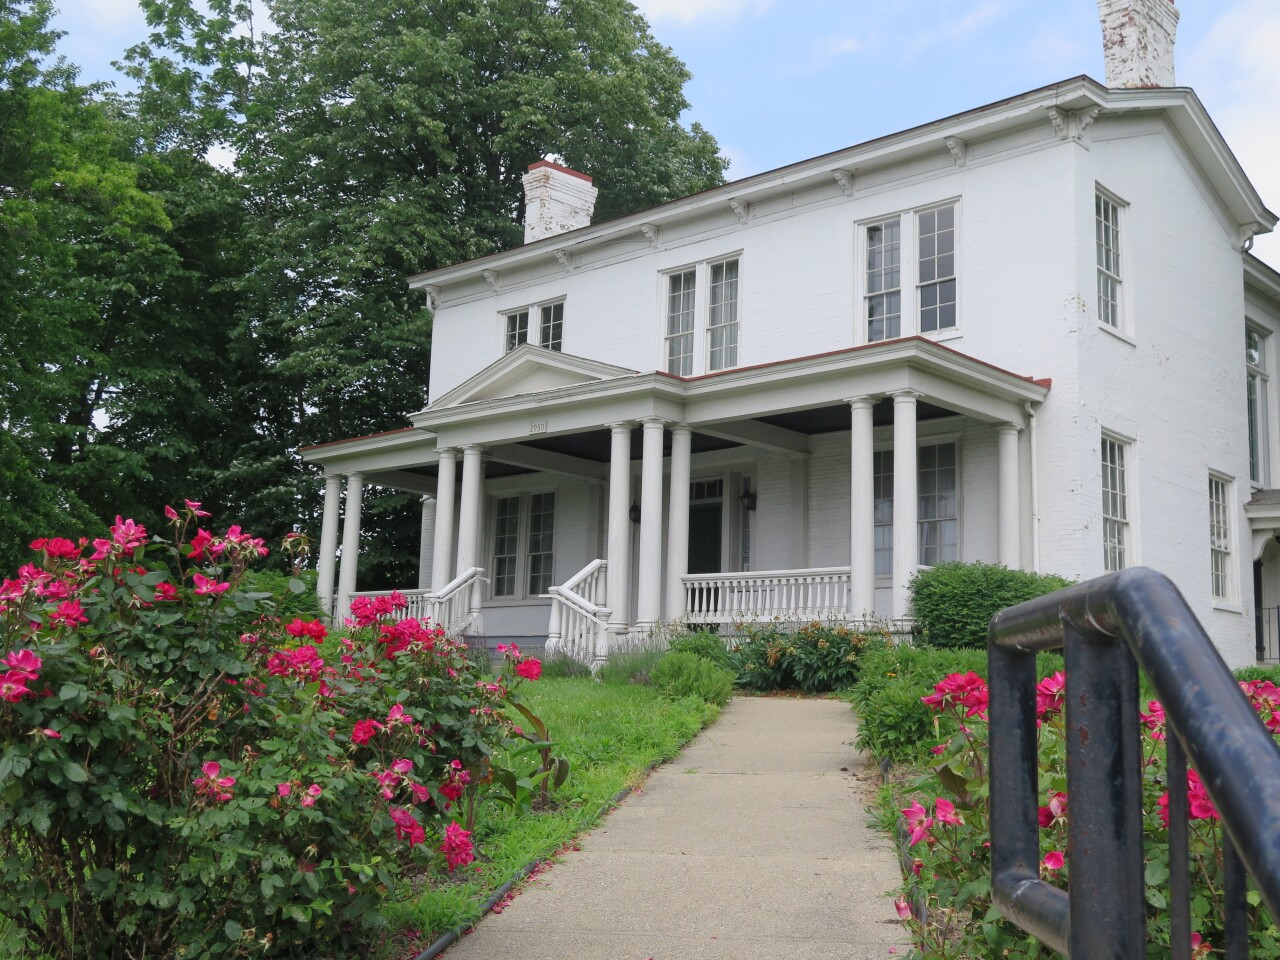 Harriet_Beecher_Stowe_House.JPG